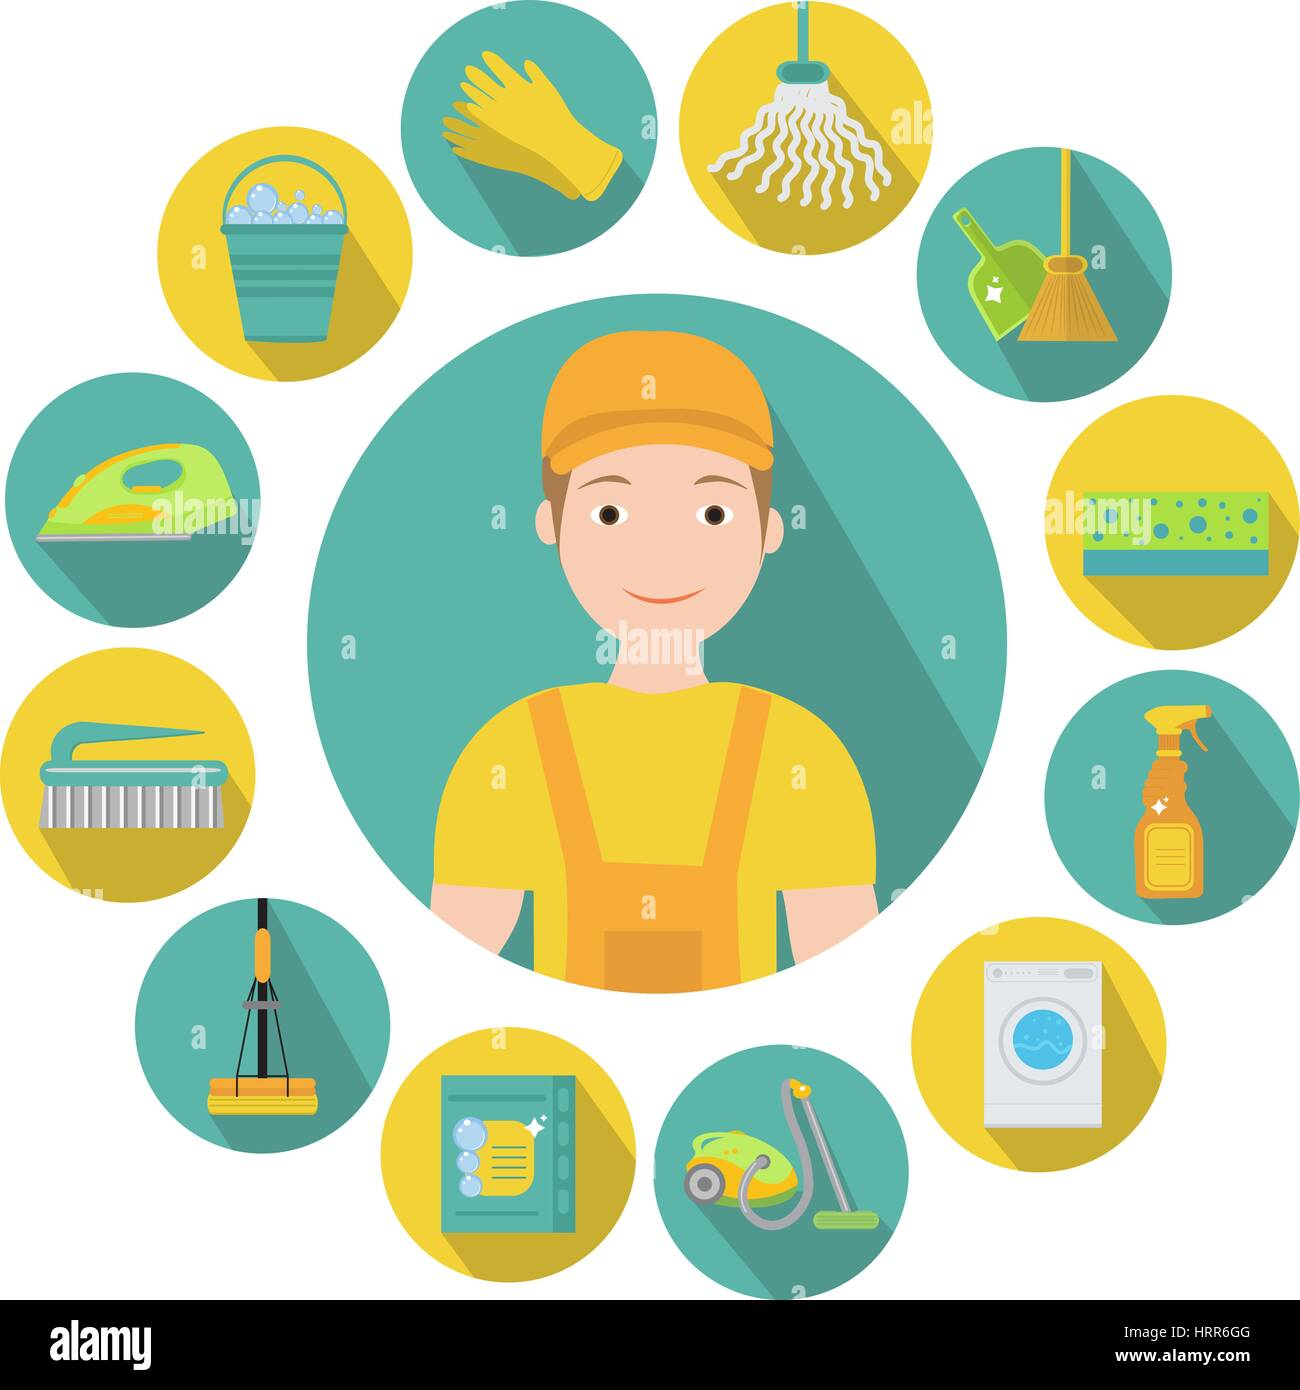 Set of icons for cleaning tools. House cleaning staff. Flat design style. Cleaning design elements. Vector illustration - Stock Vector